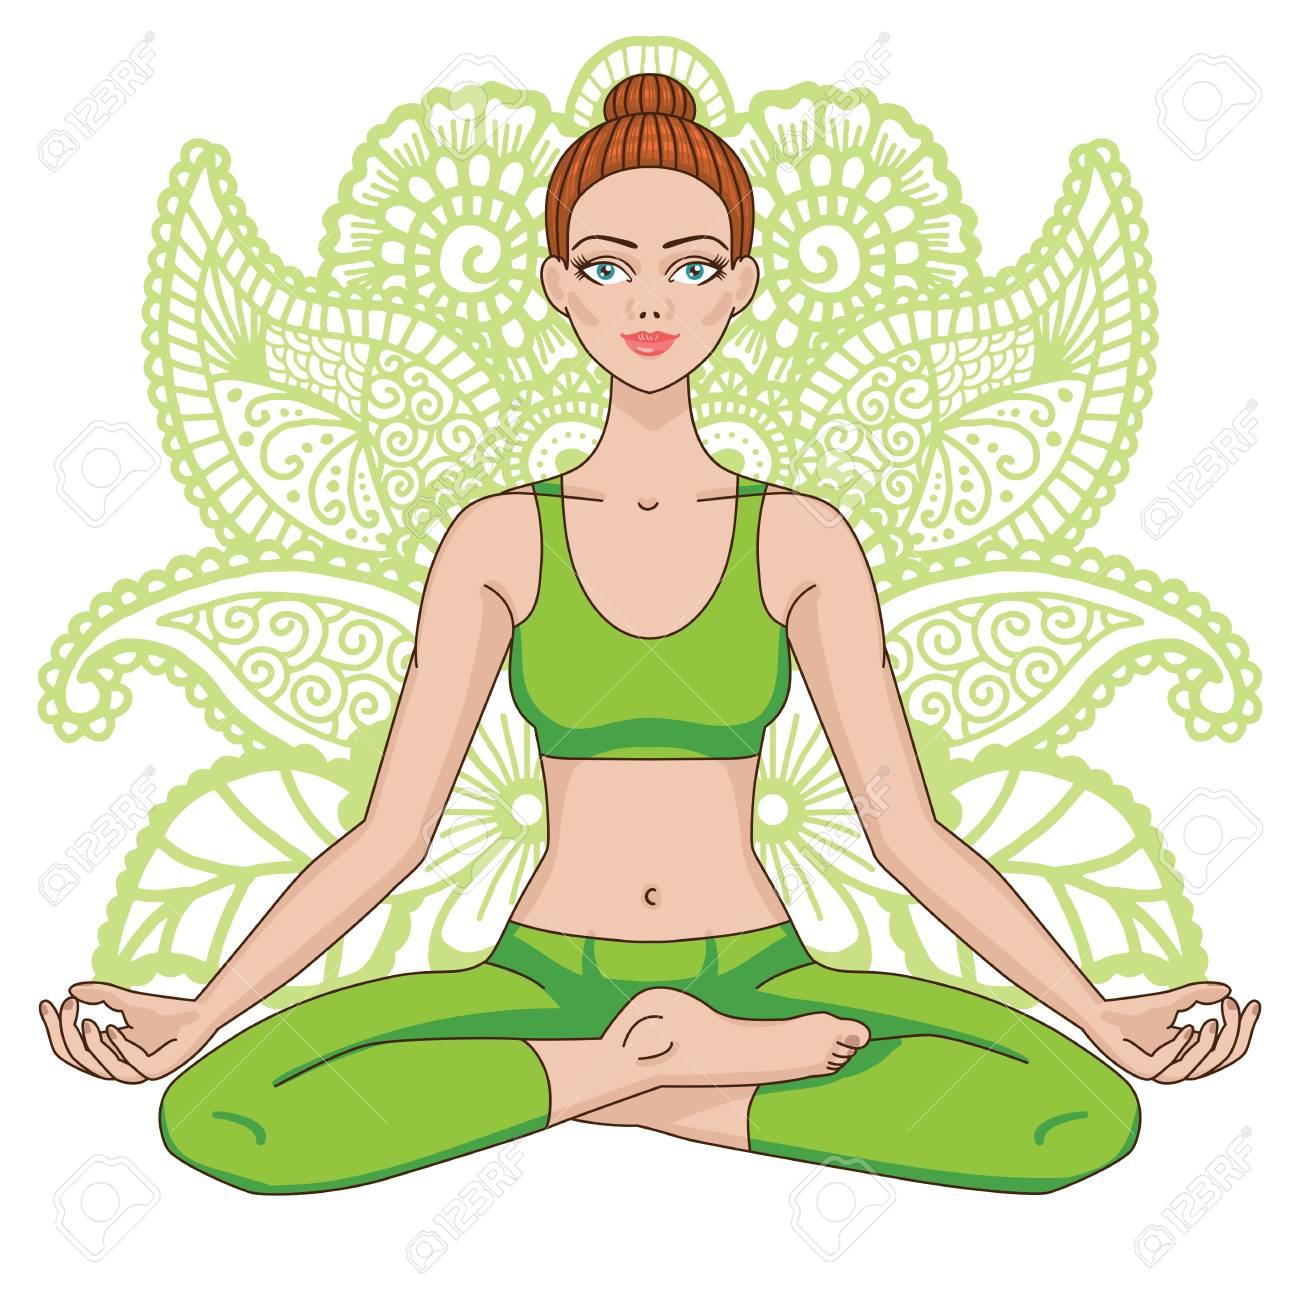 Women Silhouette Yoga Lotus Pose Padmasana Royalty Free Cliparts Vectors And Stock Illustration Image 72368790